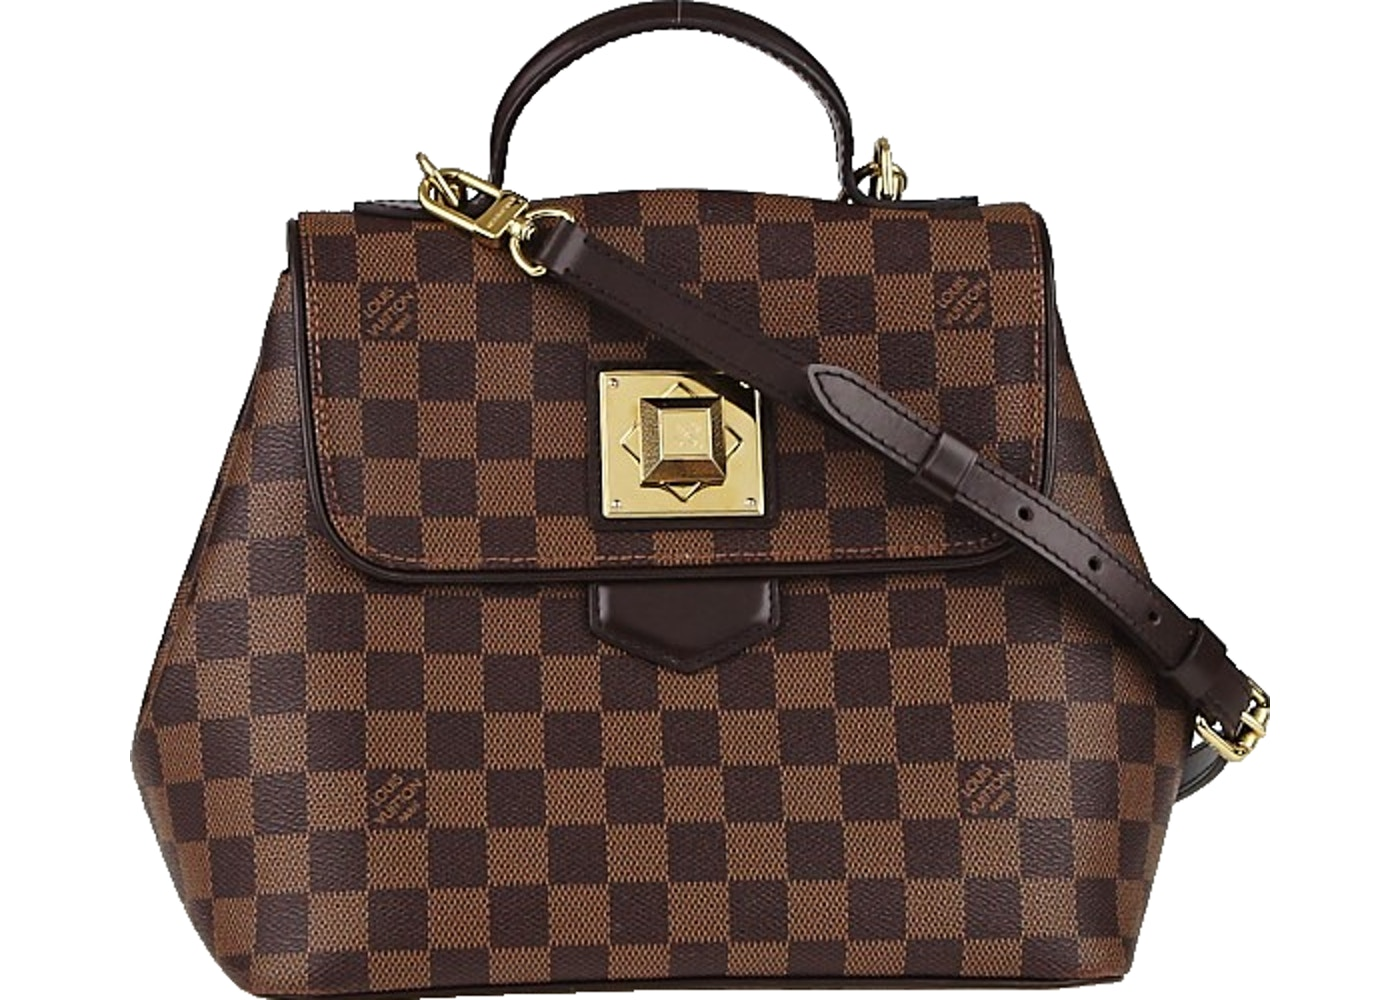 022293778dca Louis Vuitton Bergamo Damier Ebene PM Brown